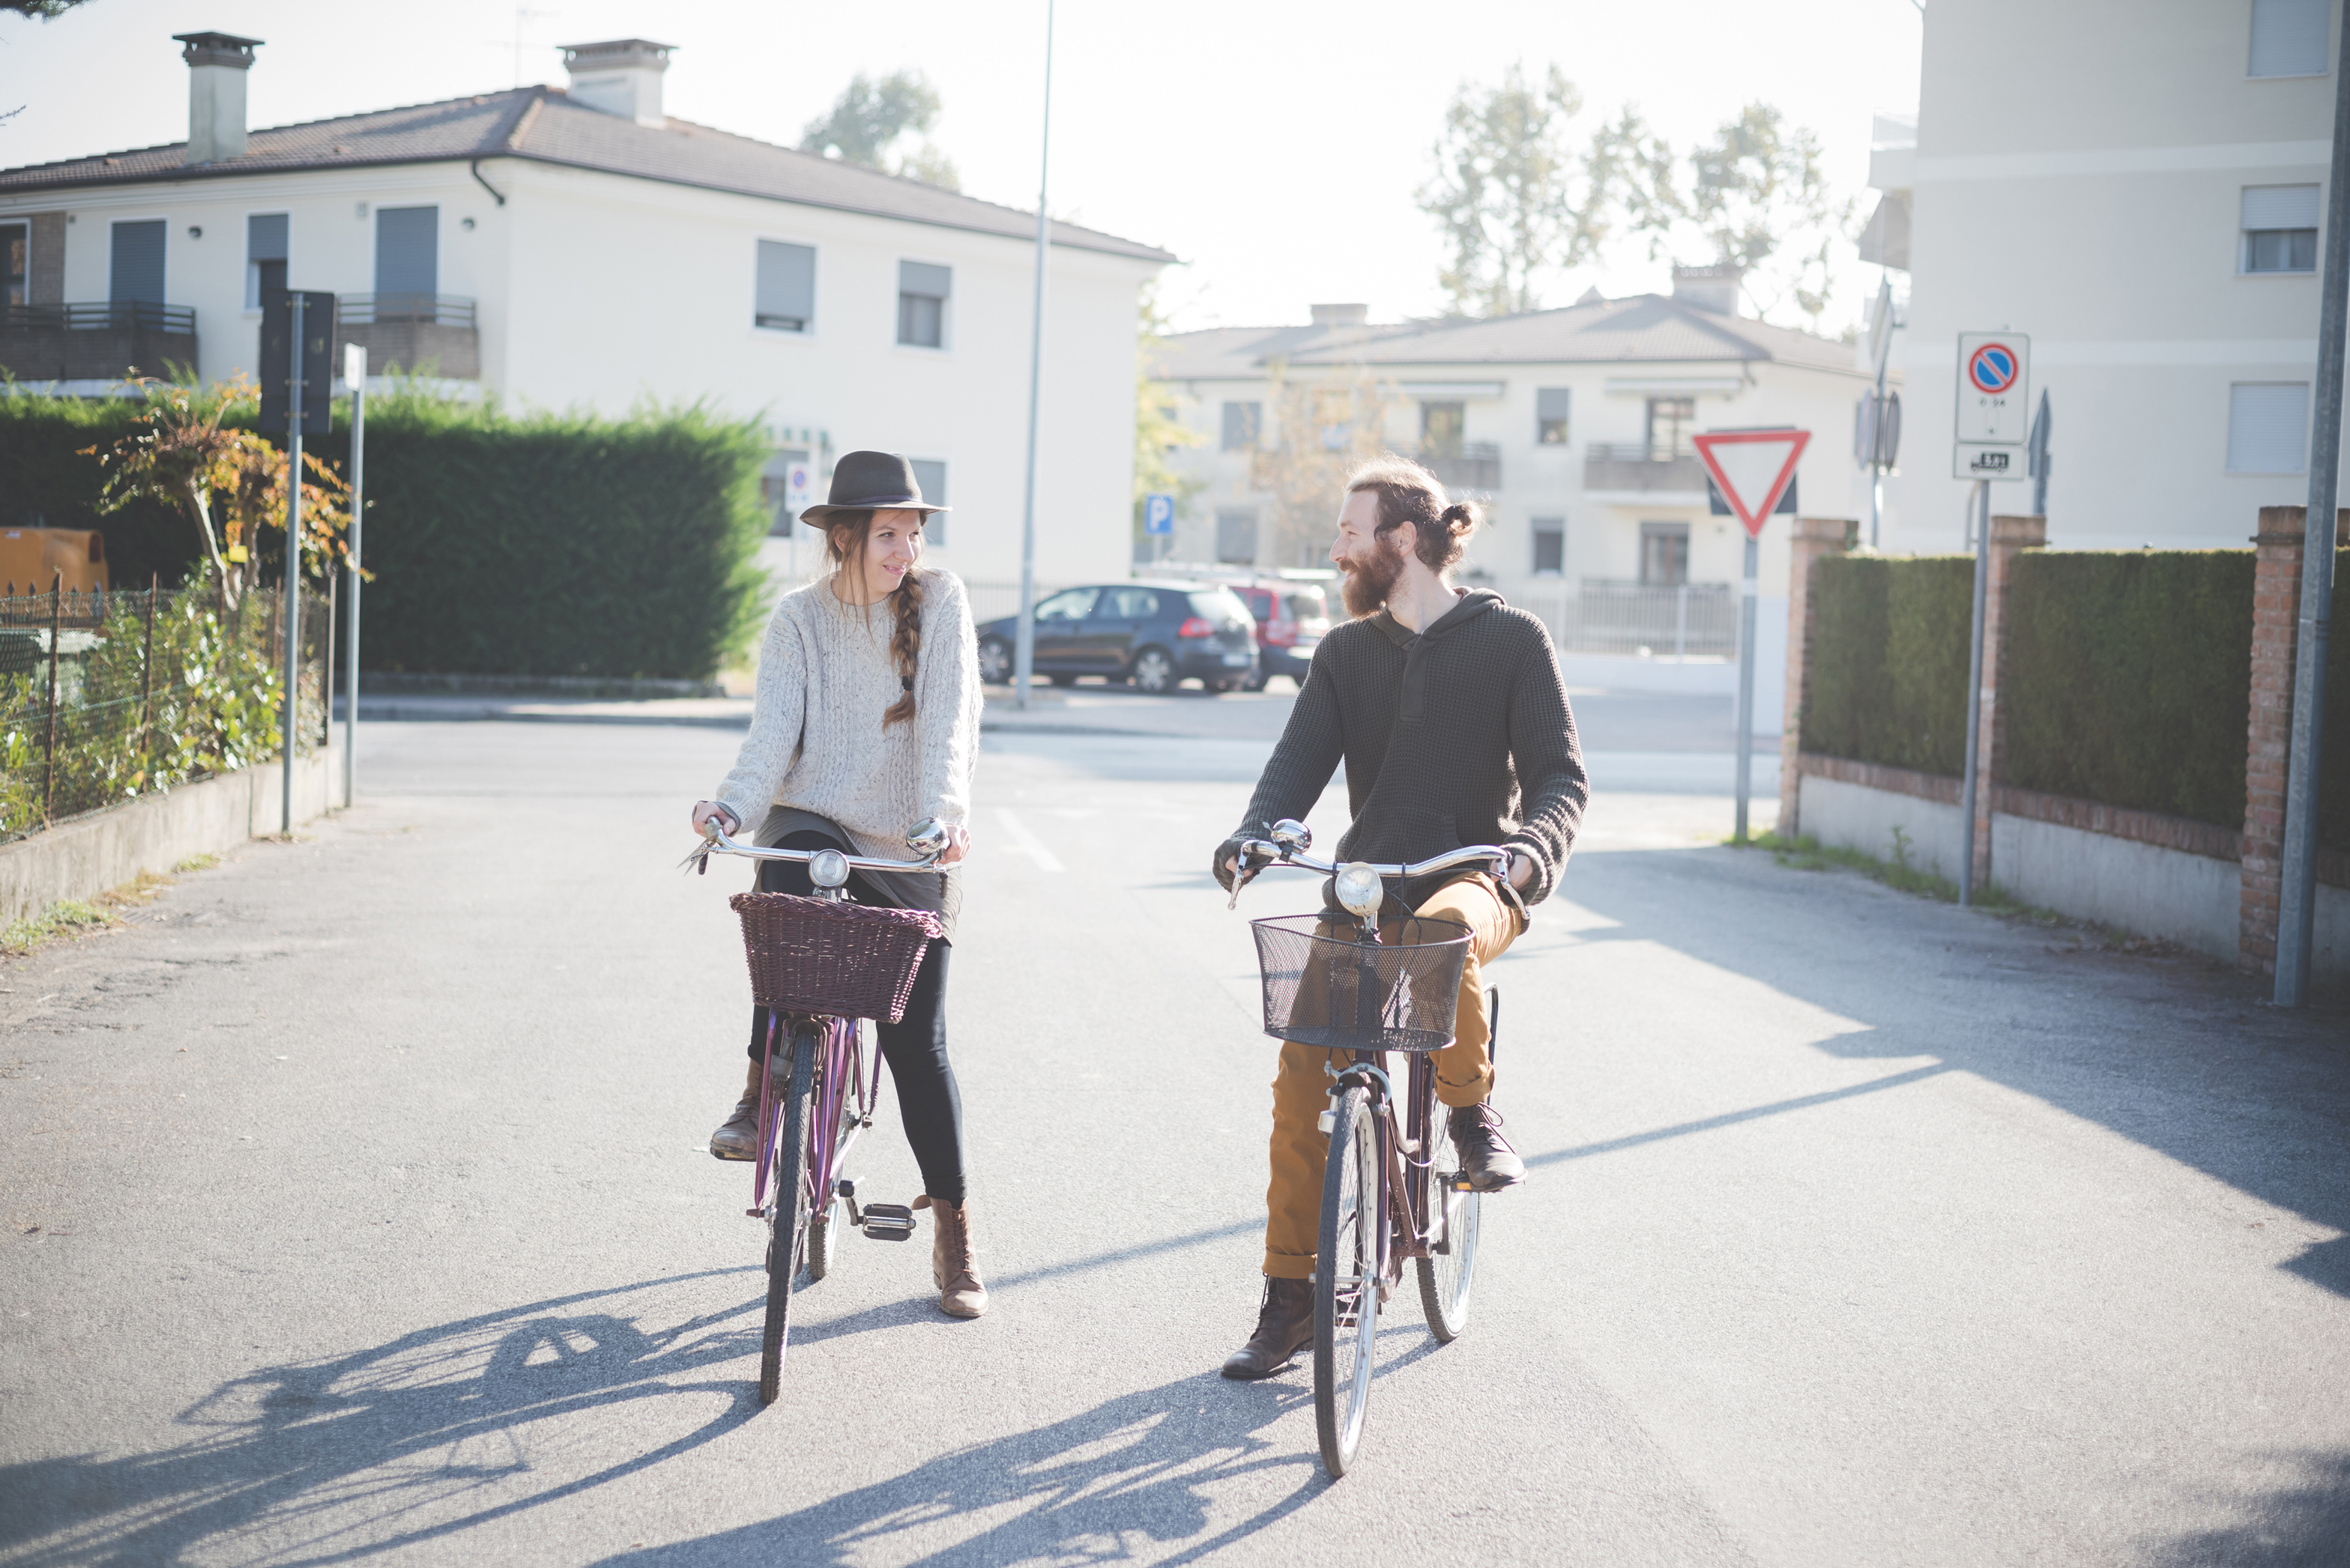 couple riding bicycles on street